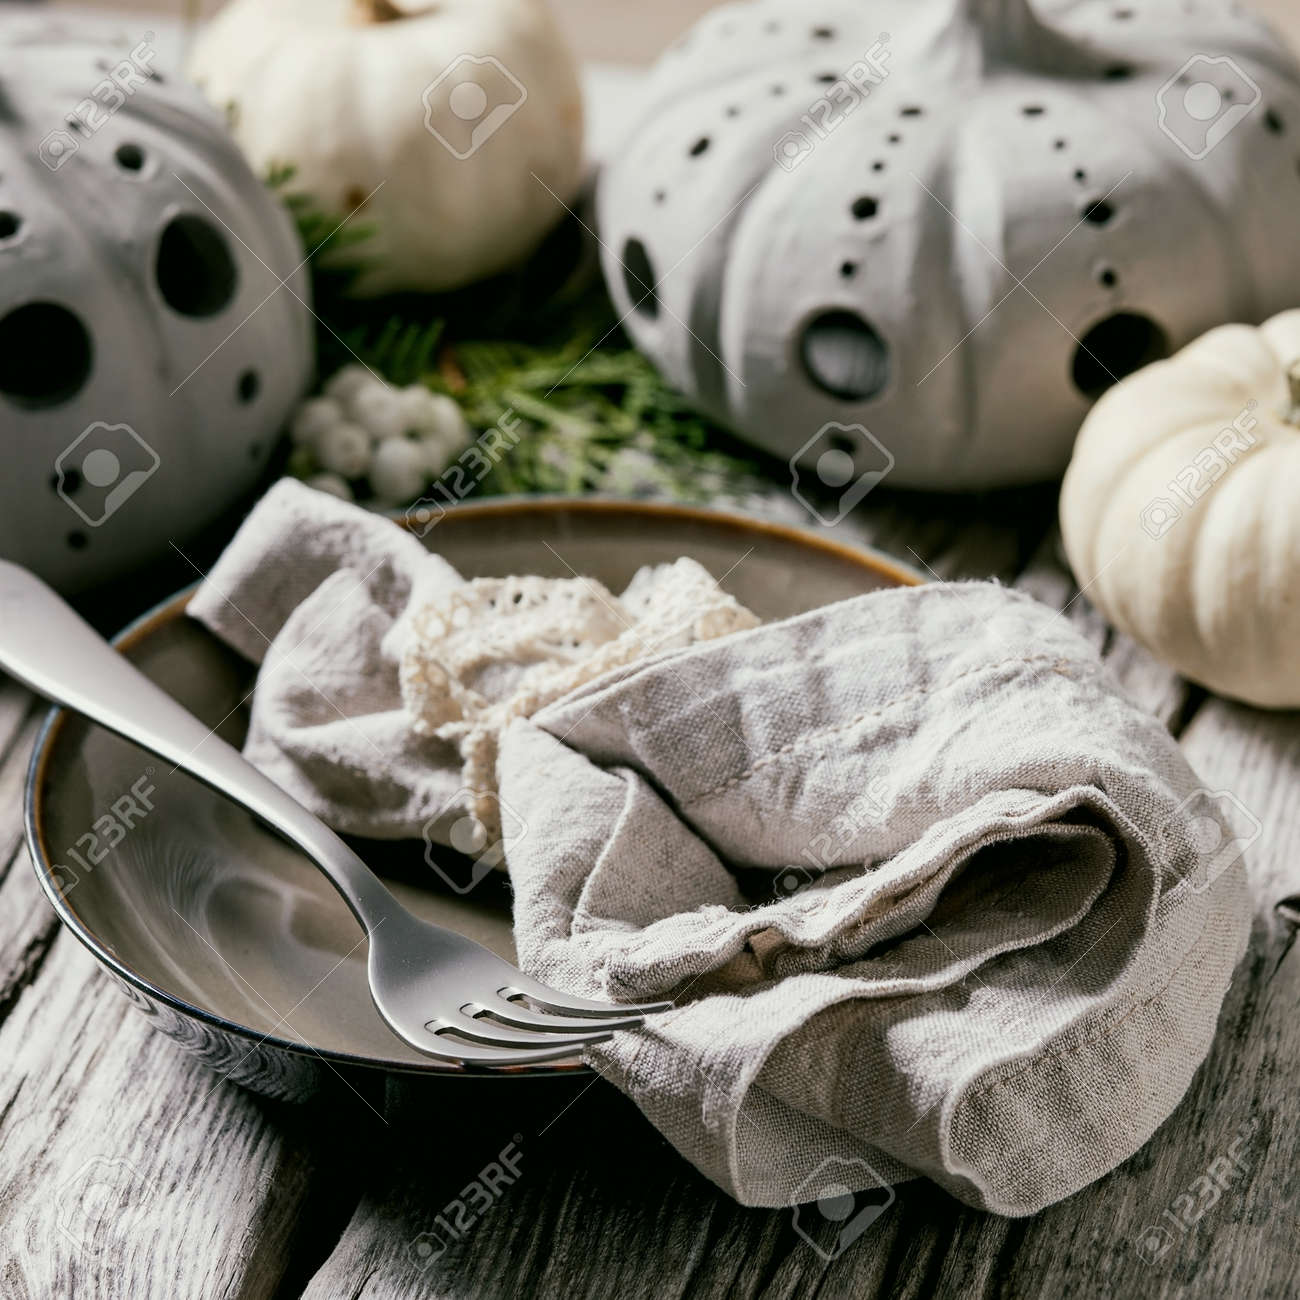 Holiday table setting decoration with white decorative pumpkins, craft clay pumpkins, thuja branches, empty plate with cloth napkin, cutlery over old wooden table. Close up. Square - 173052891